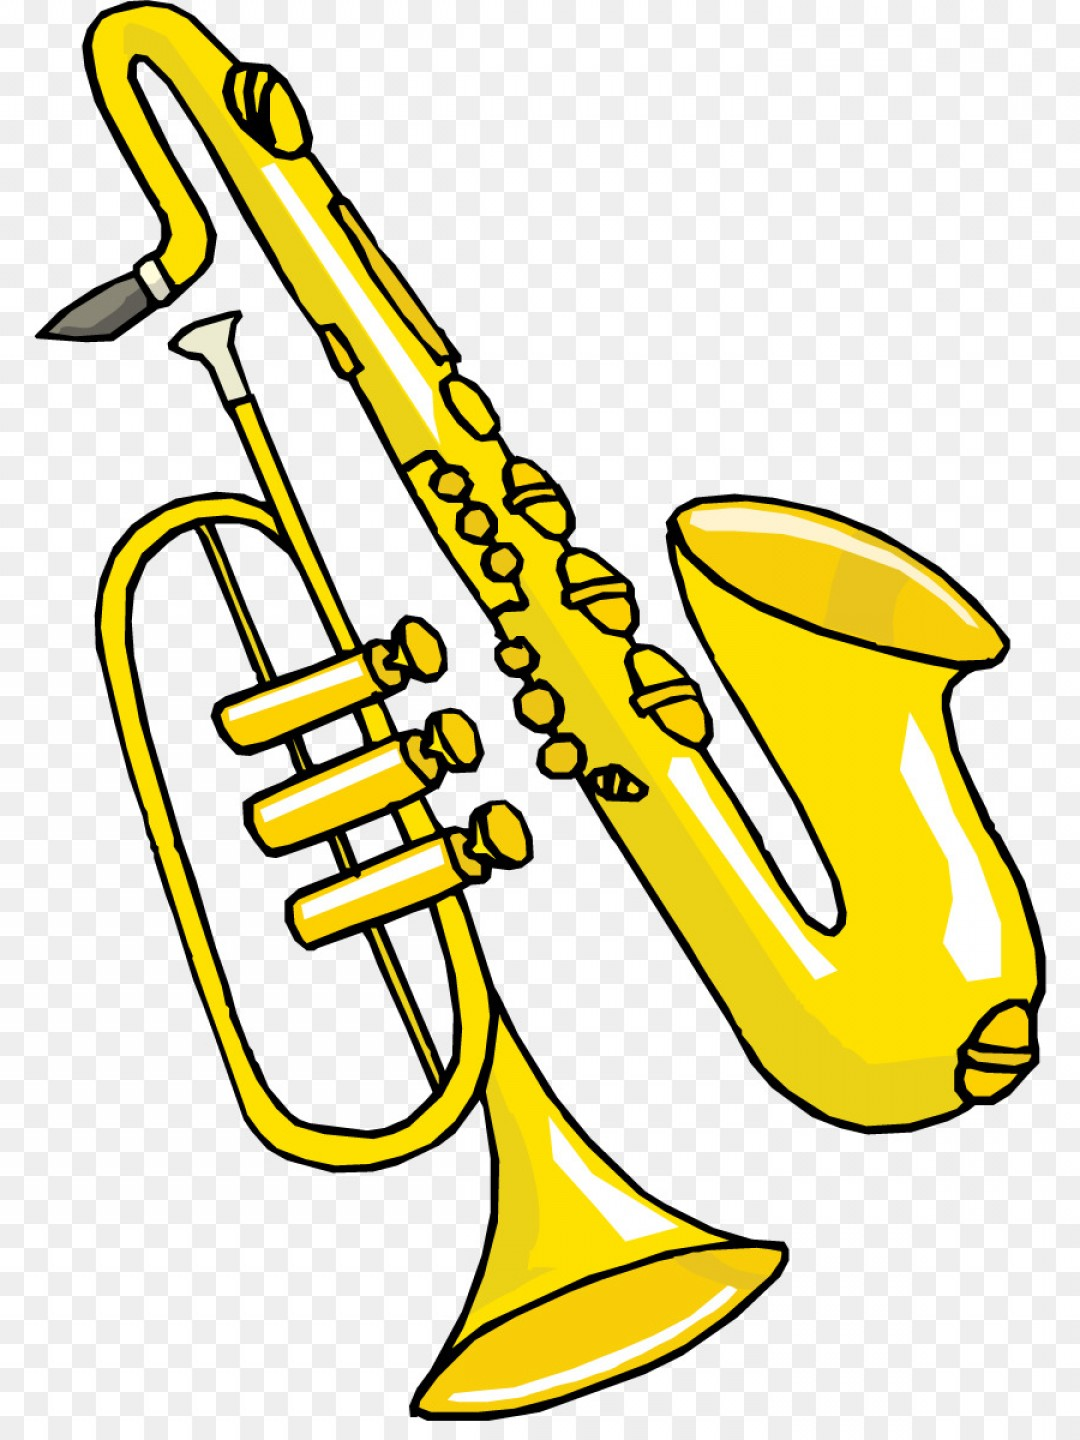 Alto Saxophone Vector Graphics: Png Saxophone Jazz Clip Art Cartoon Saxophone Vector